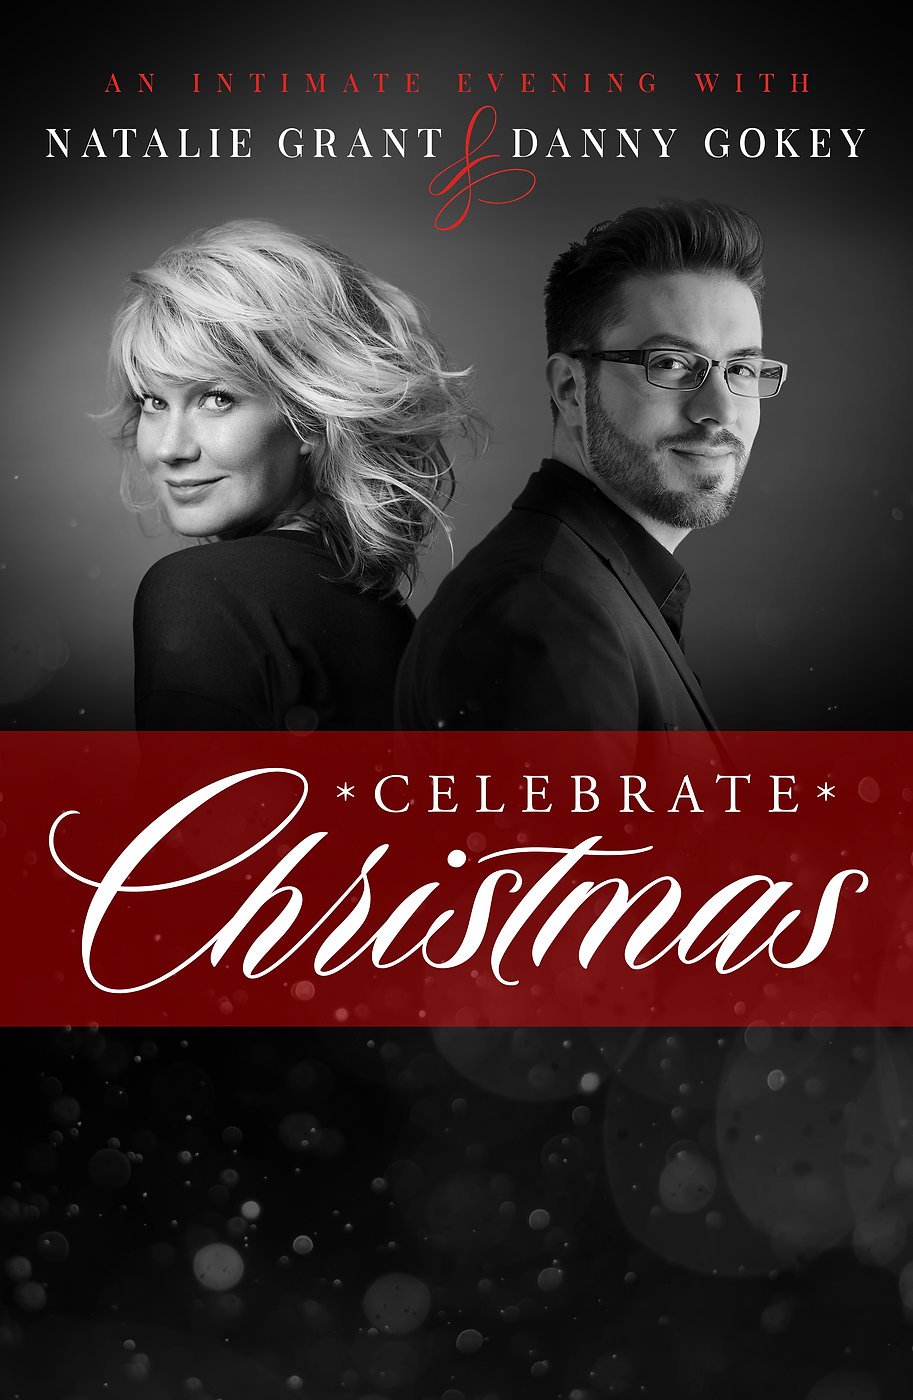 CelebrateChristmas_Website_Graphic_new.j